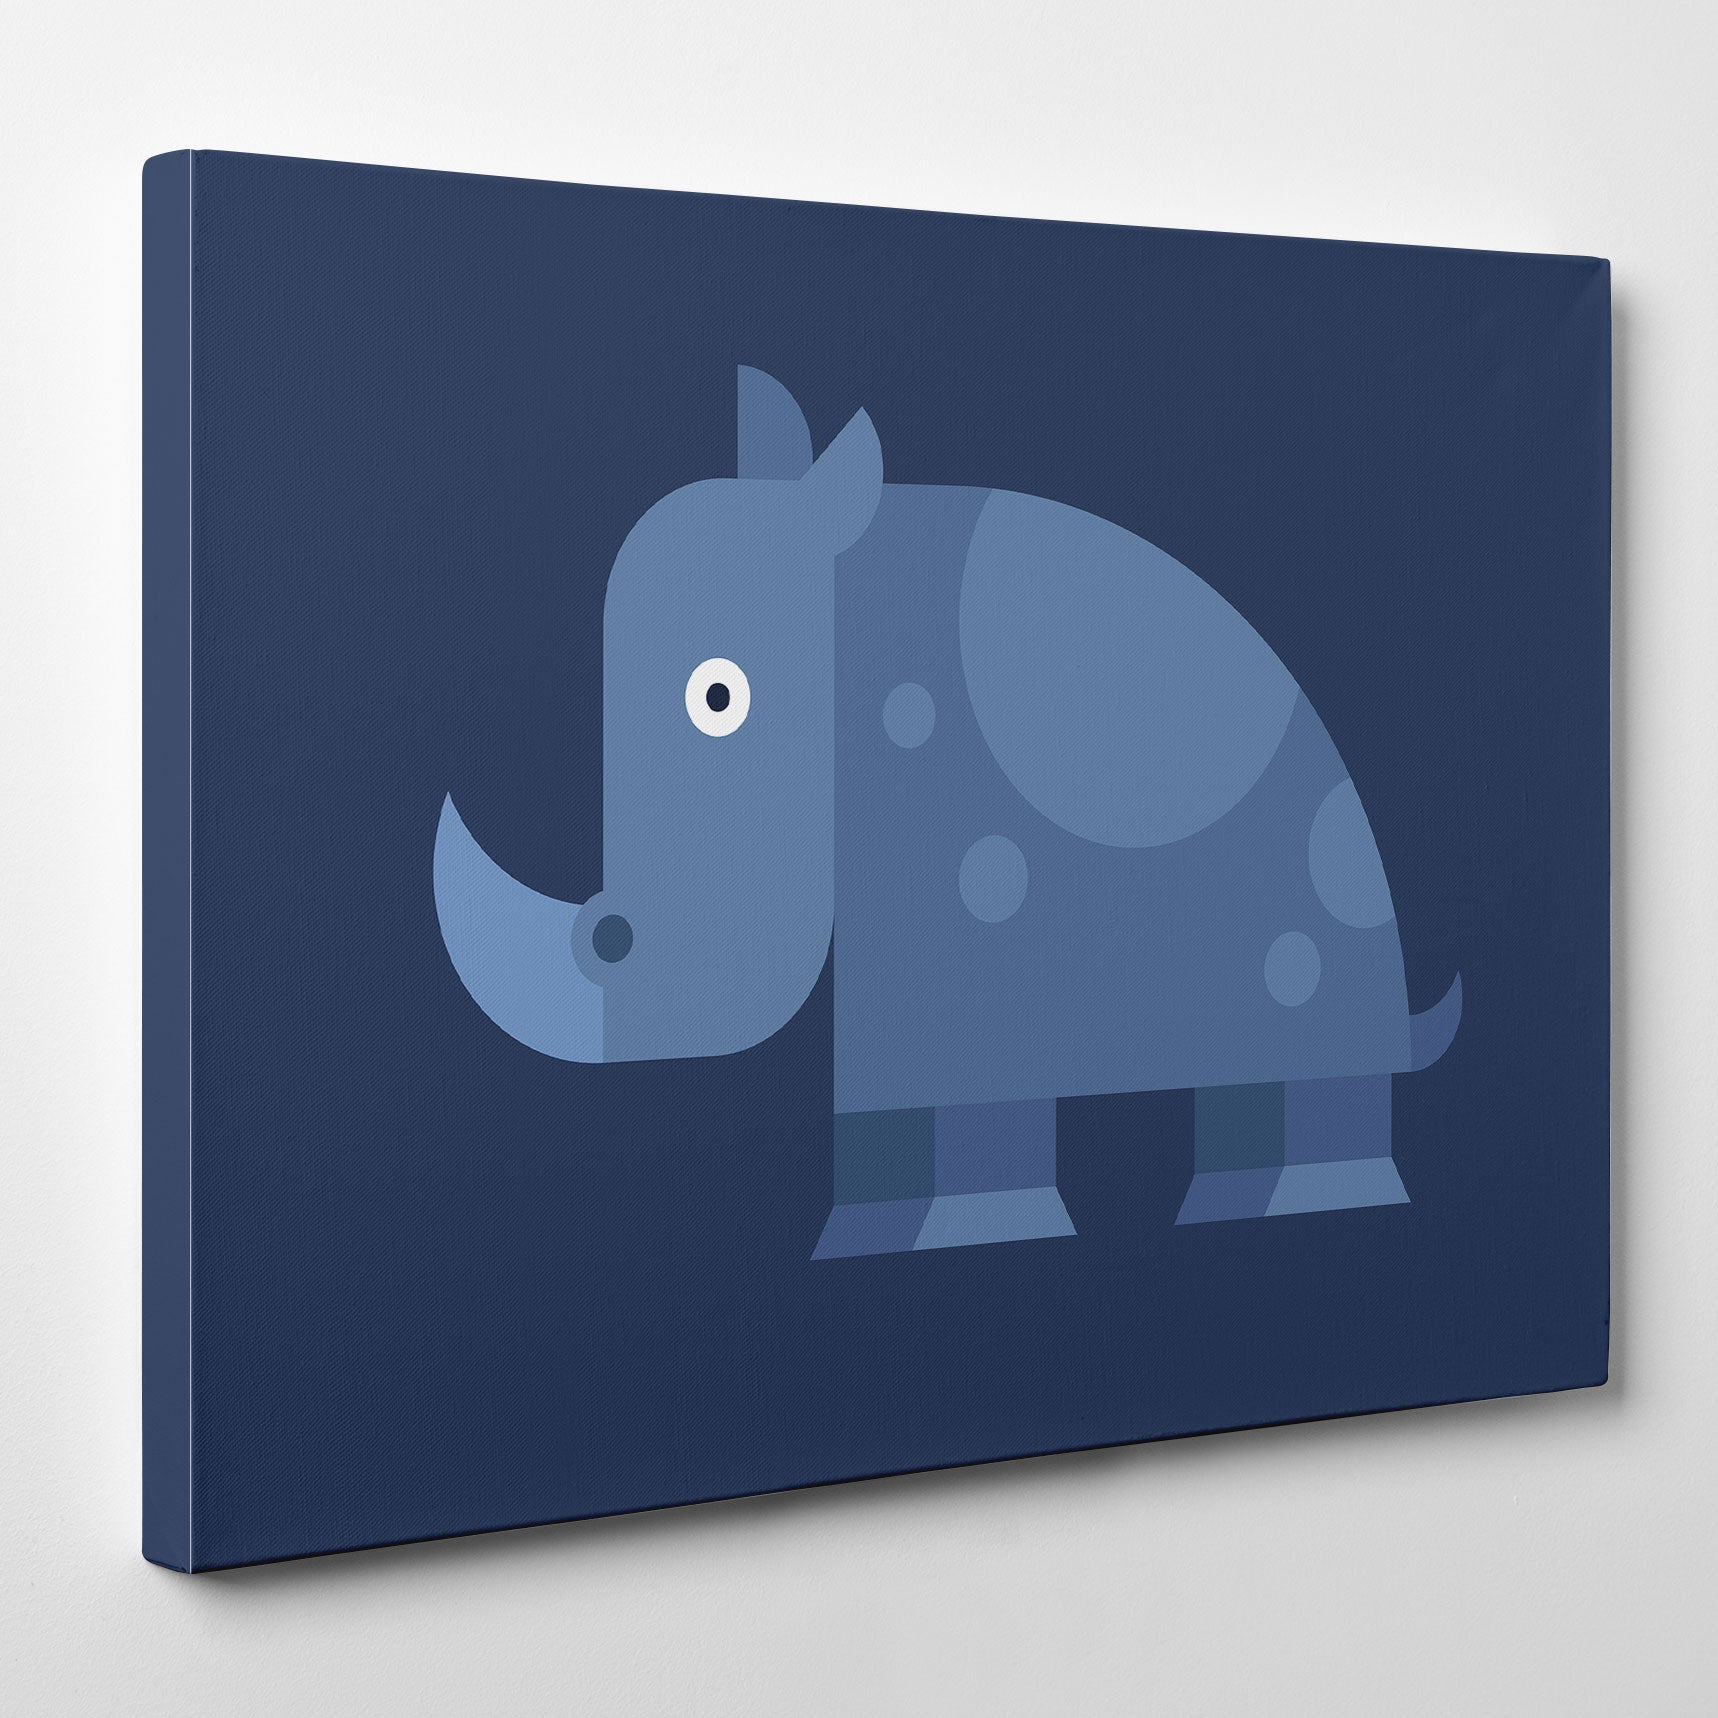 Geometric canvas print with blue rhino, on blue background.